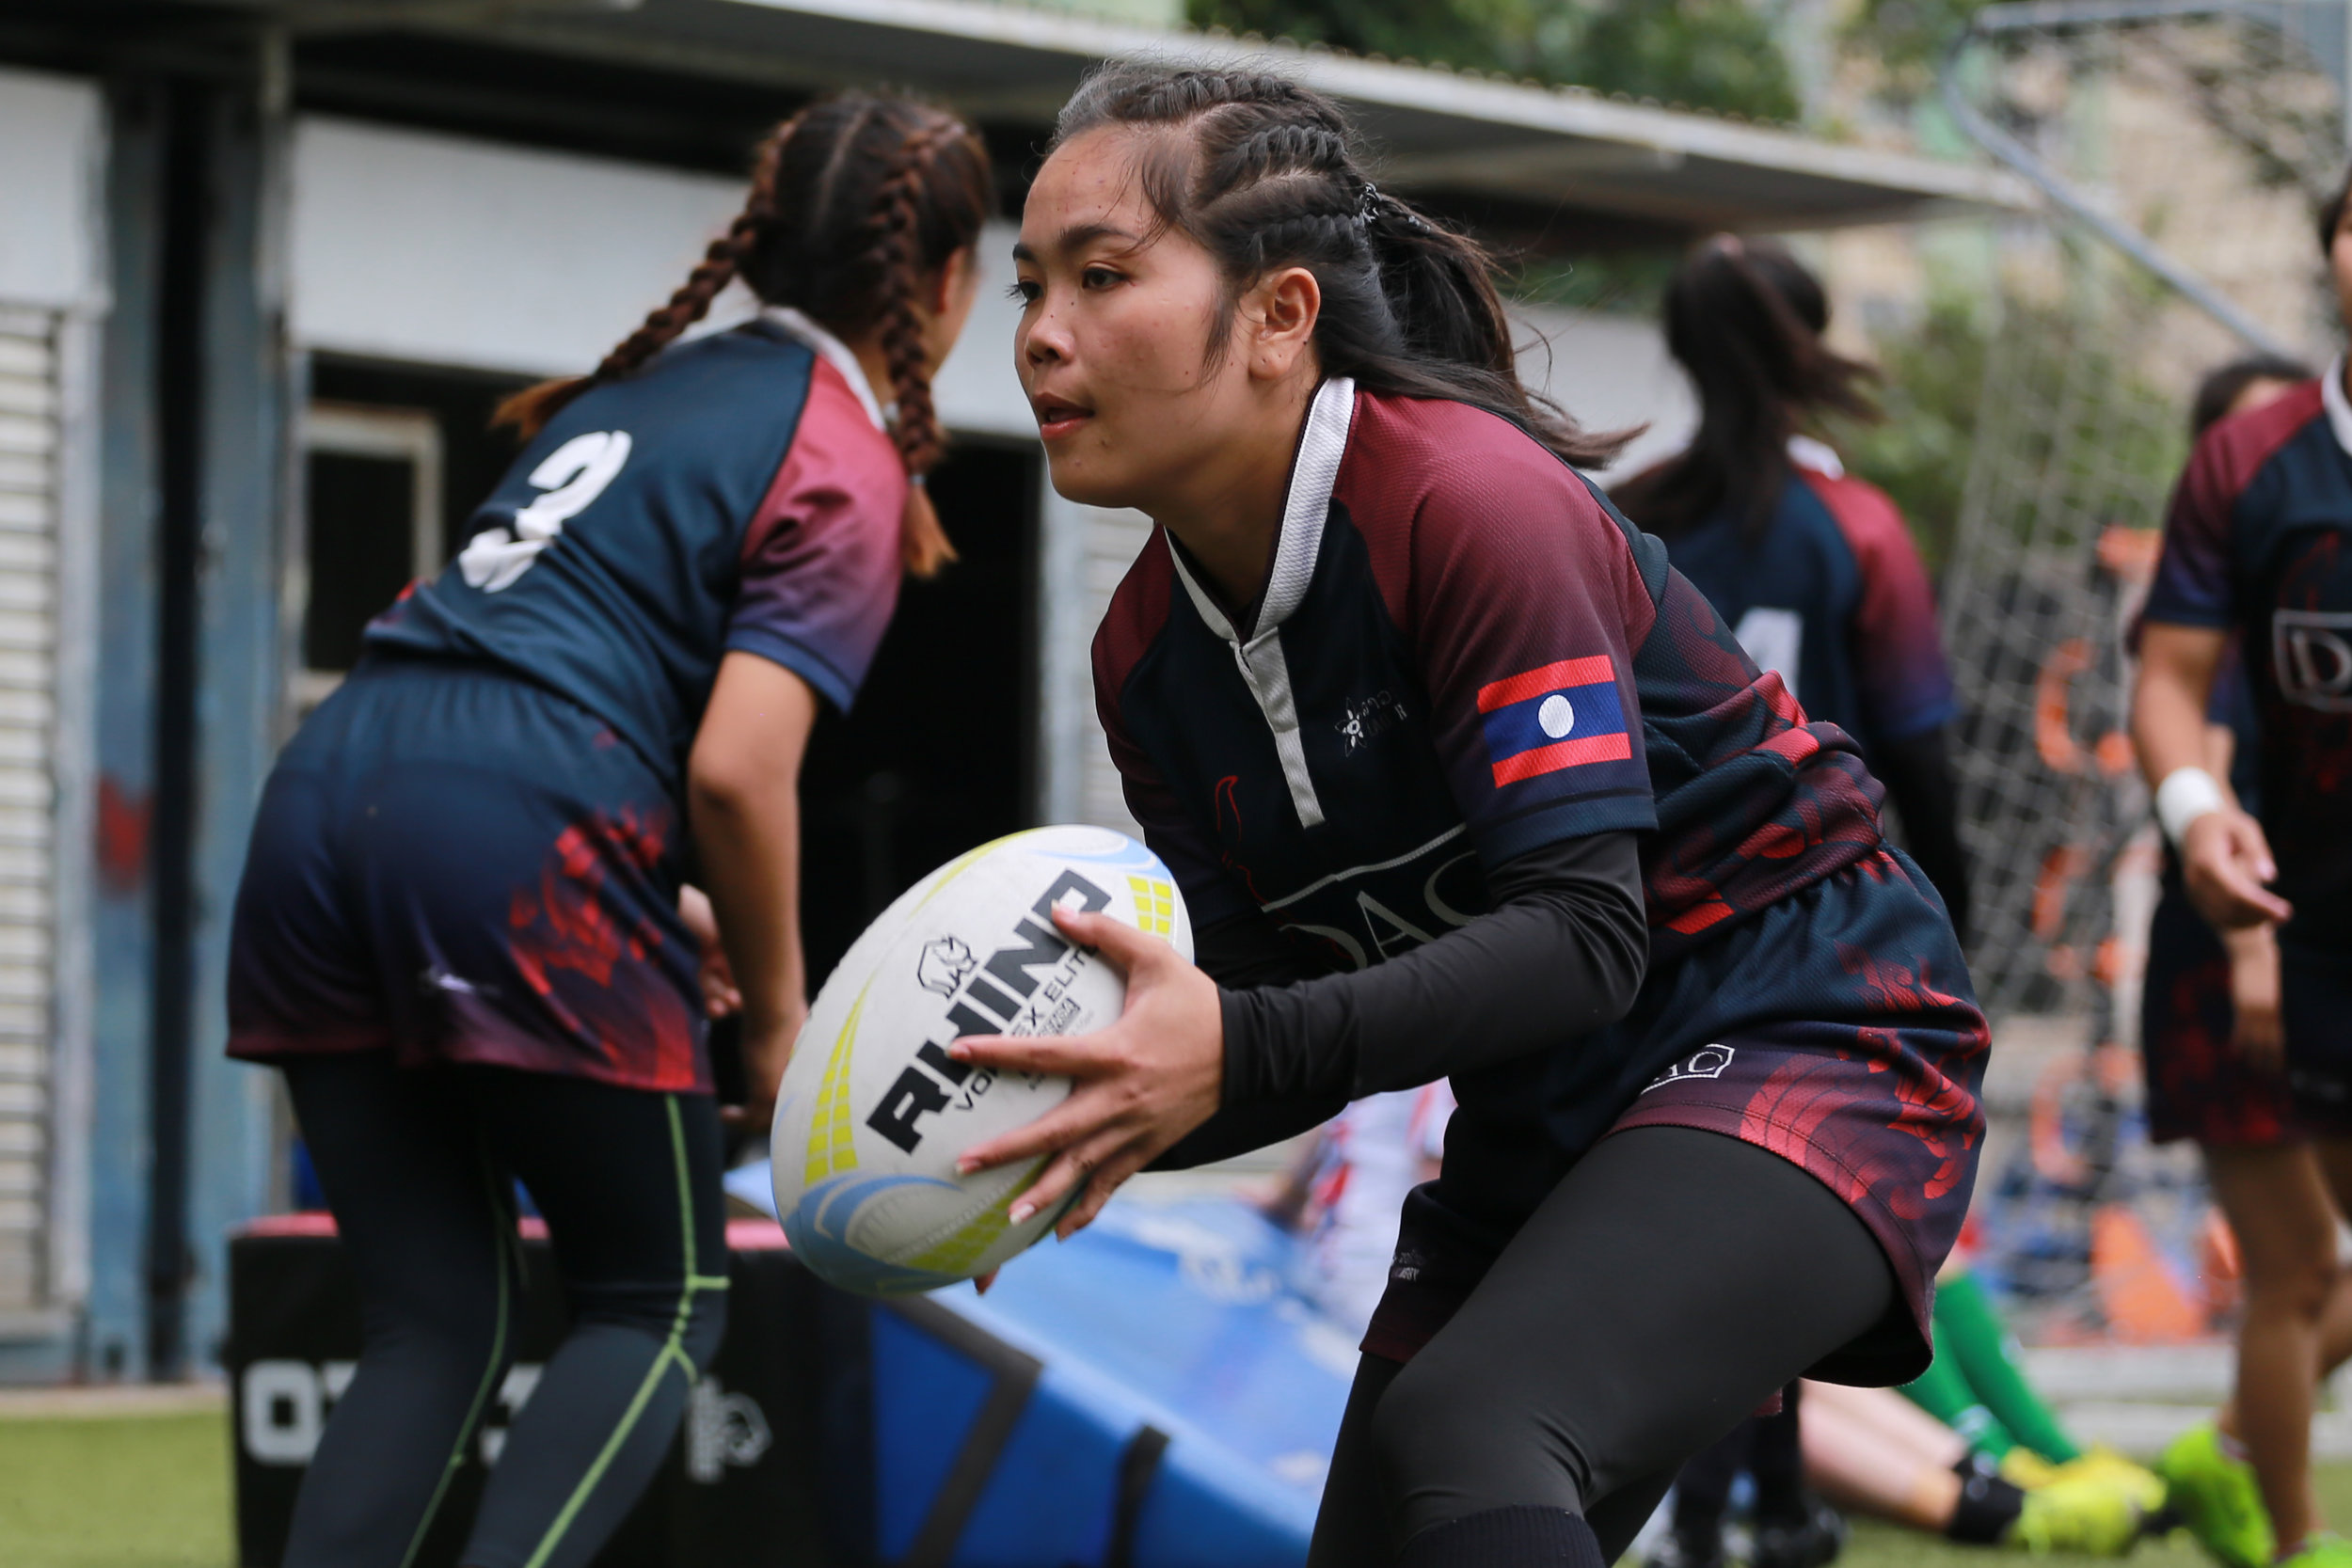 Maem is a member of the Vientiane Lions Women's Rugby Club and represented Laos at the Asia Rugby 7s Trophy, leading to a 19-0 victory against Qatar.